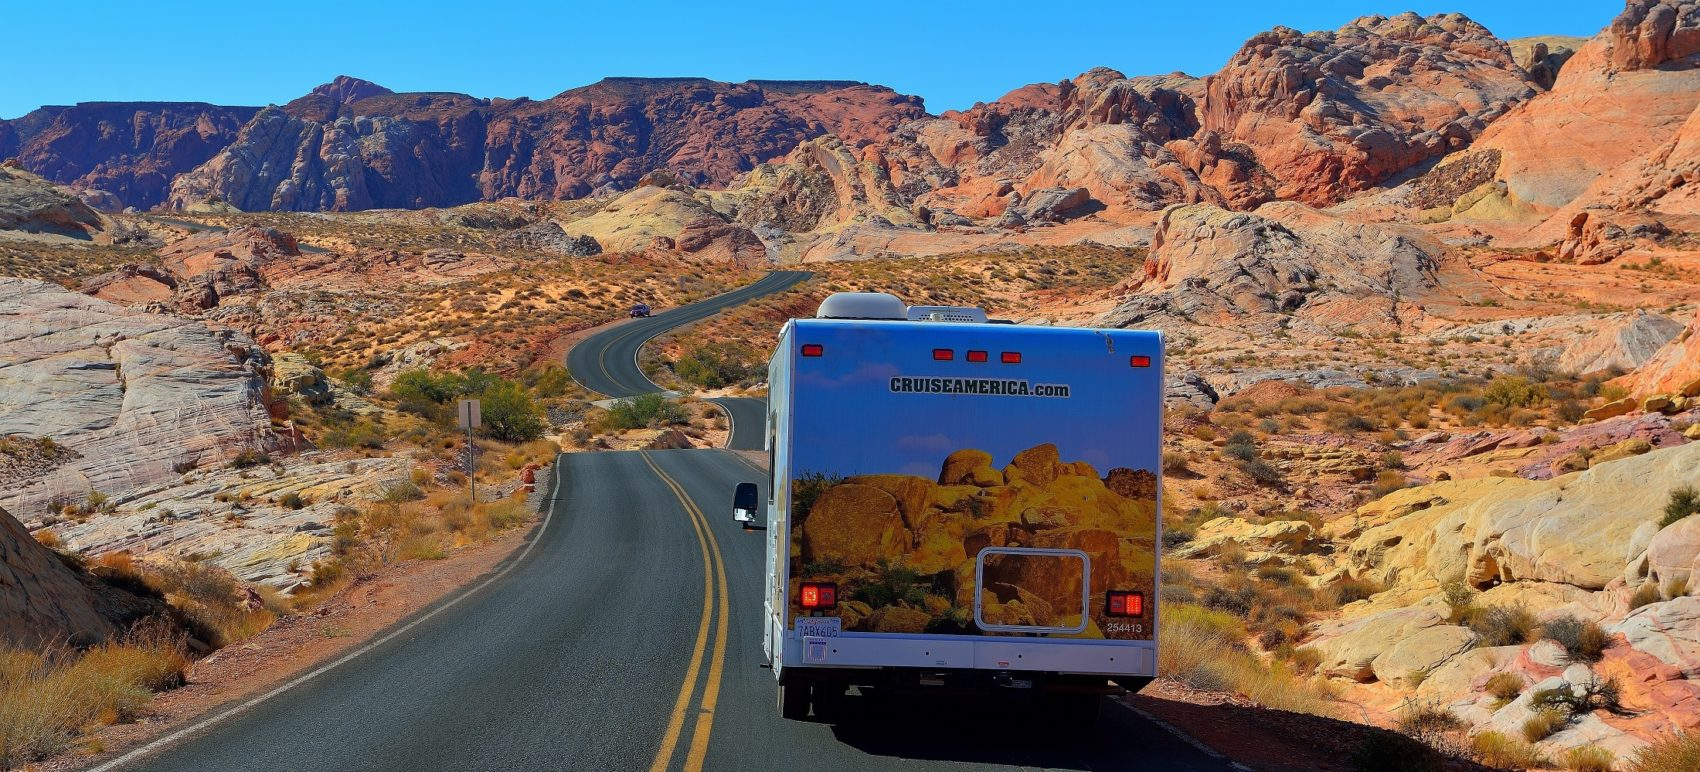 Canyons & Rockies motorhome holiday